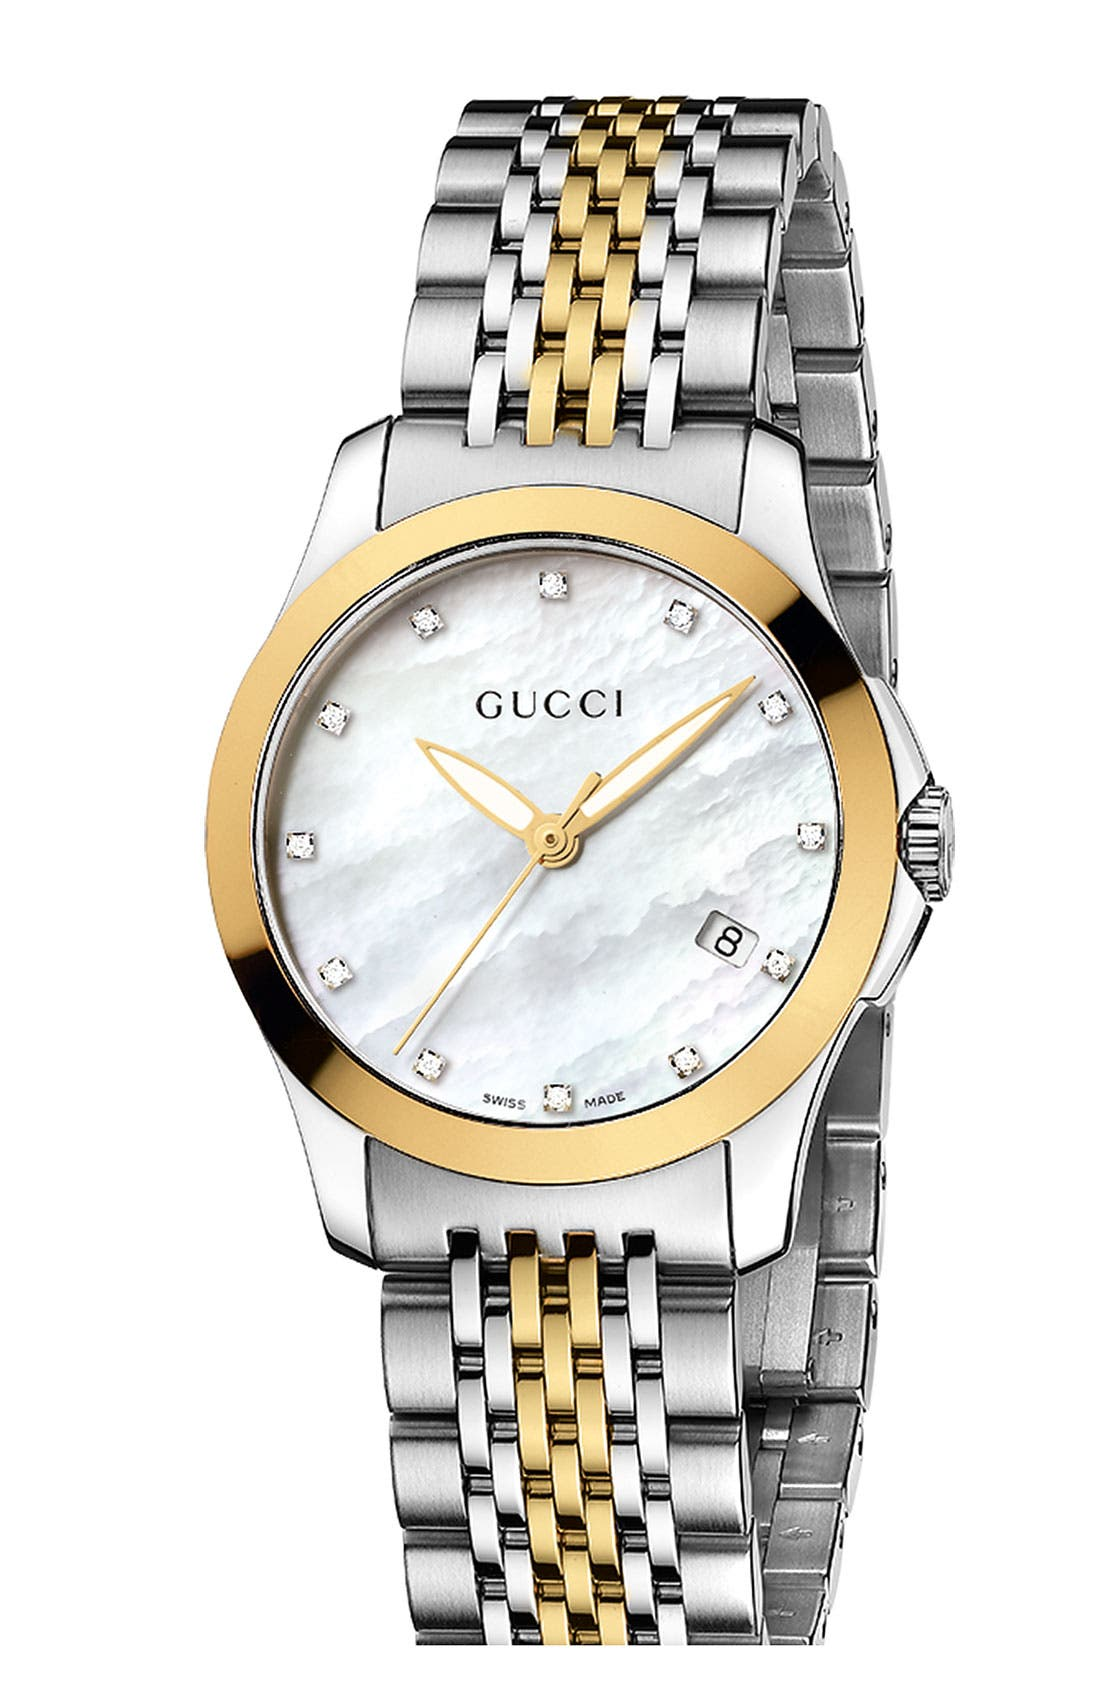 Main Image - Gucci 'G Timeless' Small Diamond Index Bracelet Watch, 27mm